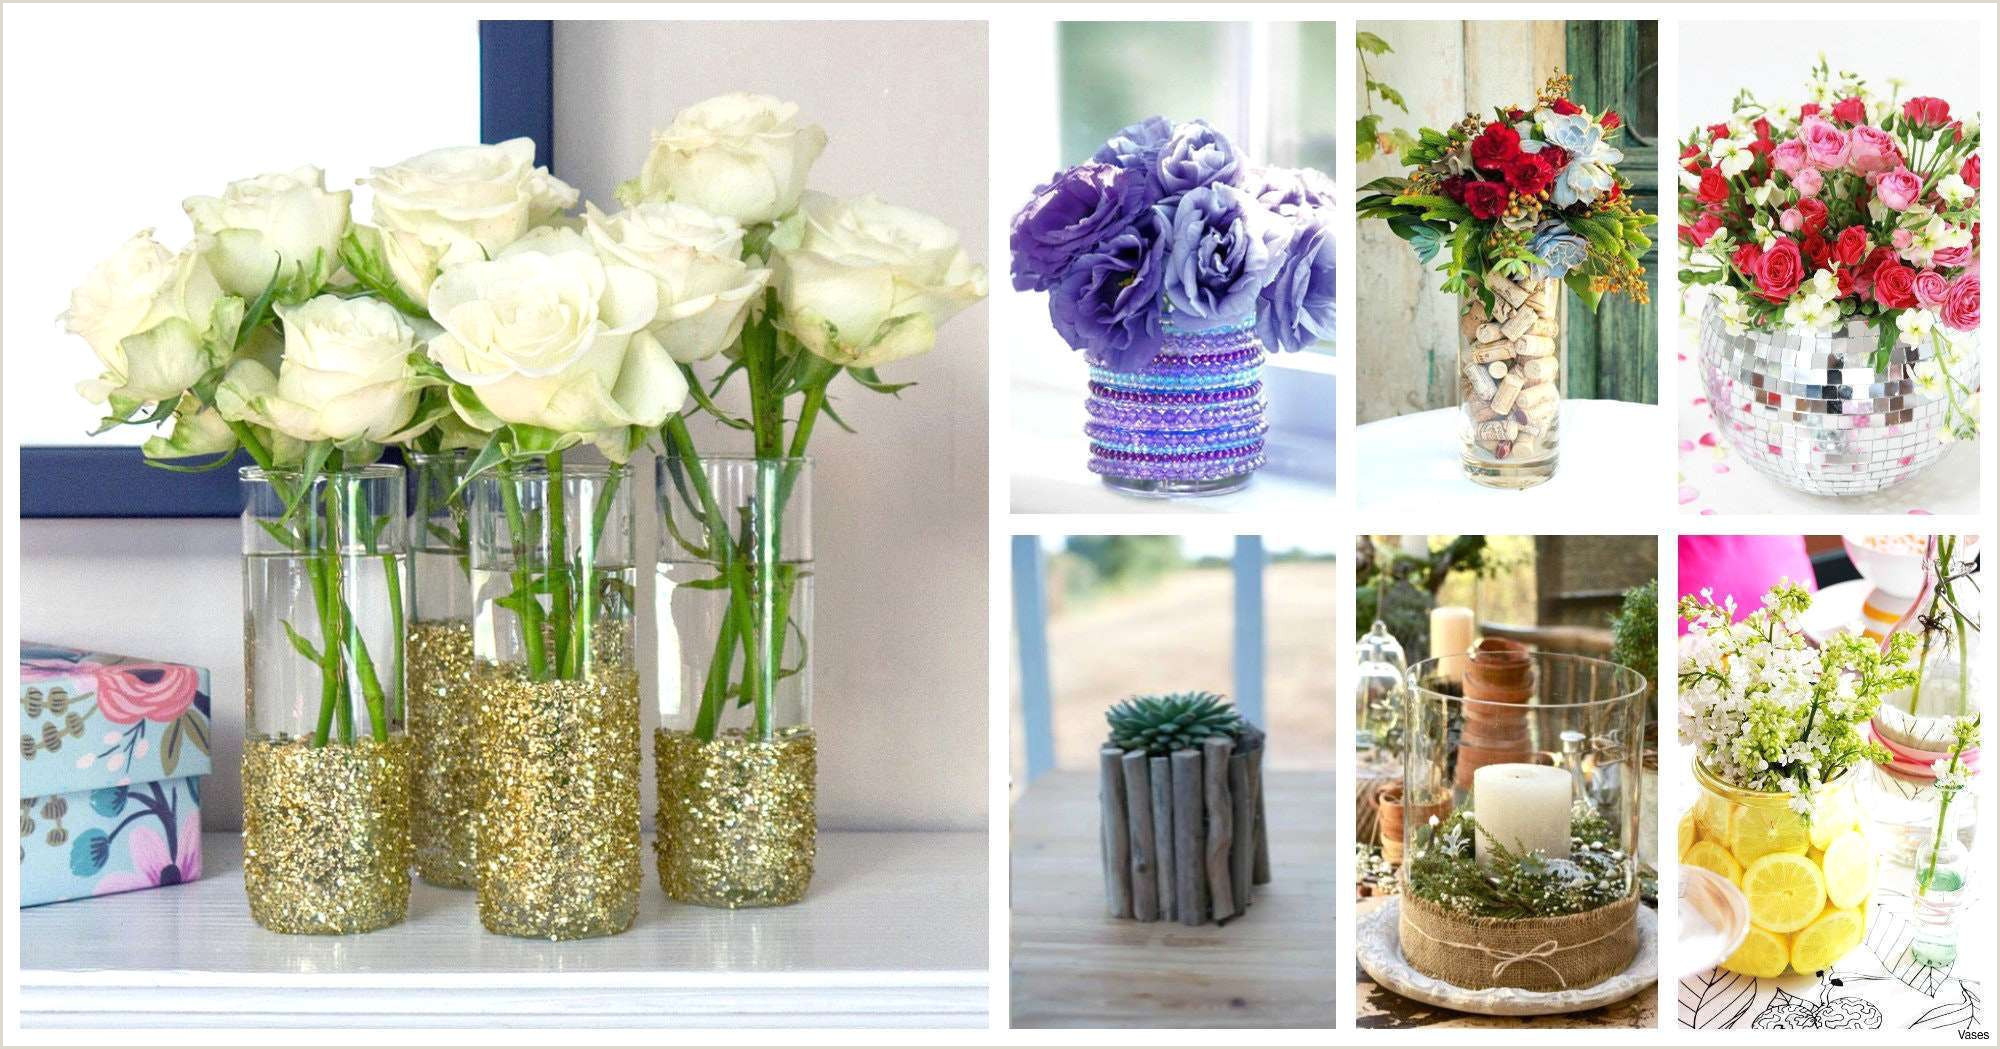 Are Square Business Cards A Good Idea 24 Best Small Square Vases For Wedding